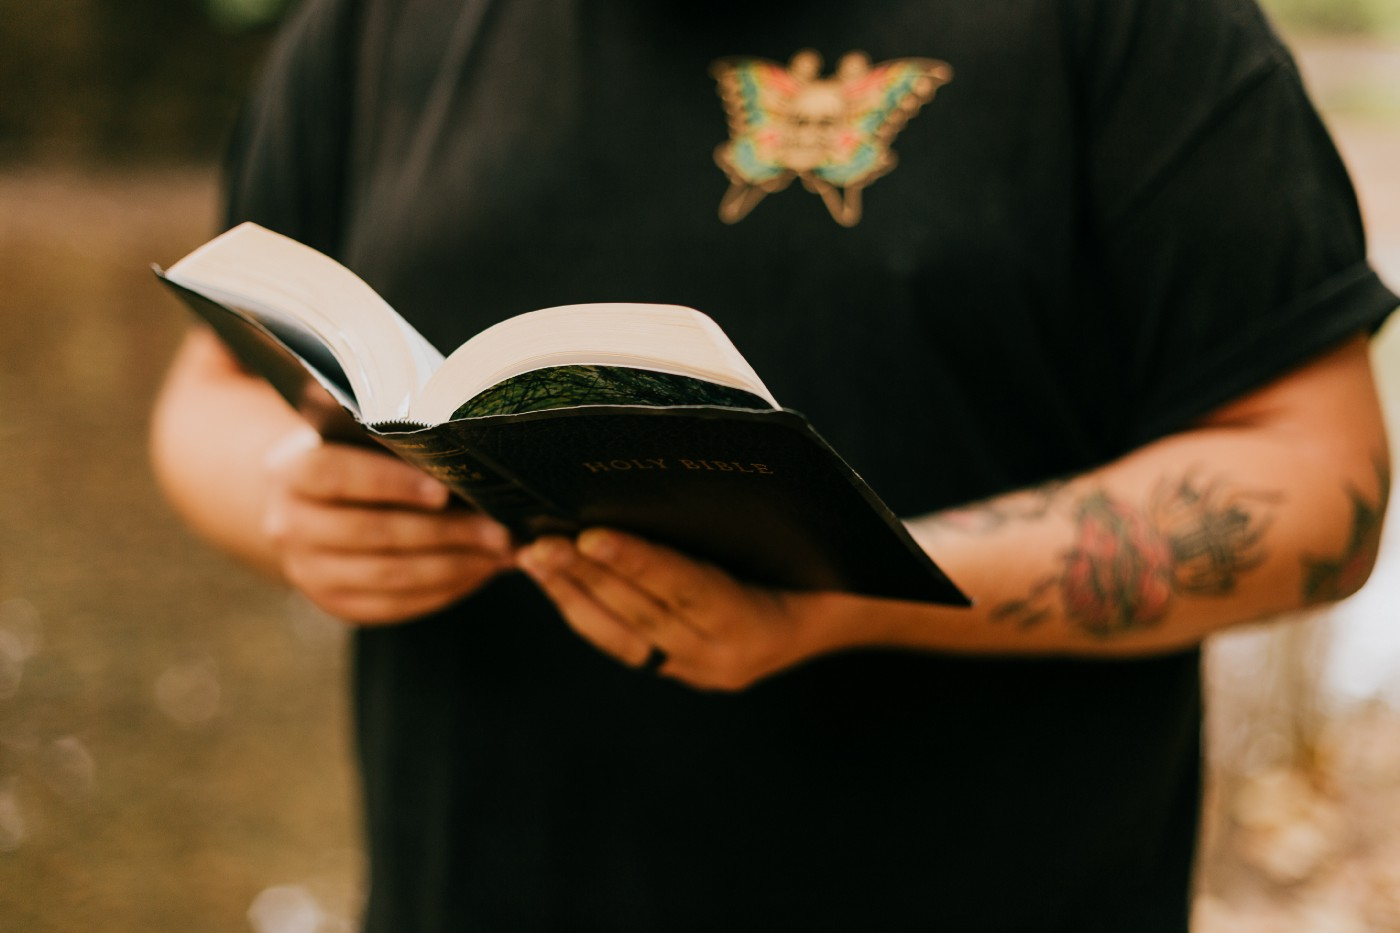 man standing while reading a black book